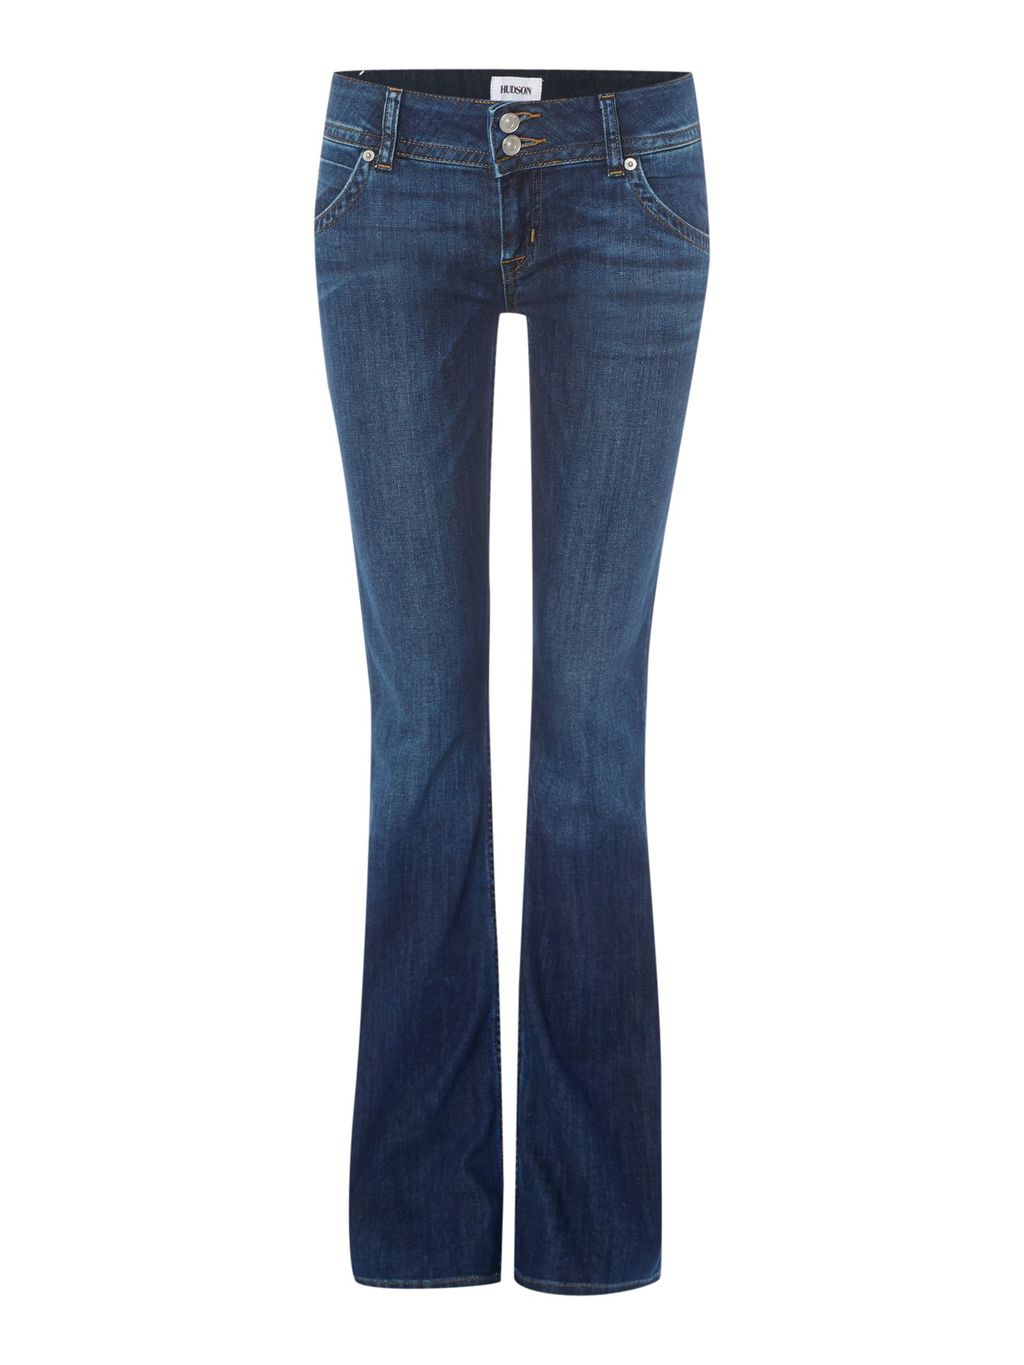 Signature Bootcut Jean In Enlightened, Denim Mid Wash - style: bootcut; length: standard; pattern: plain; pocket detail: traditional 5 pocket; waist: mid/regular rise; predominant colour: denim; occasions: casual; fibres: cotton - stretch; texture group: denim; pattern type: fabric; season: a/w 2015